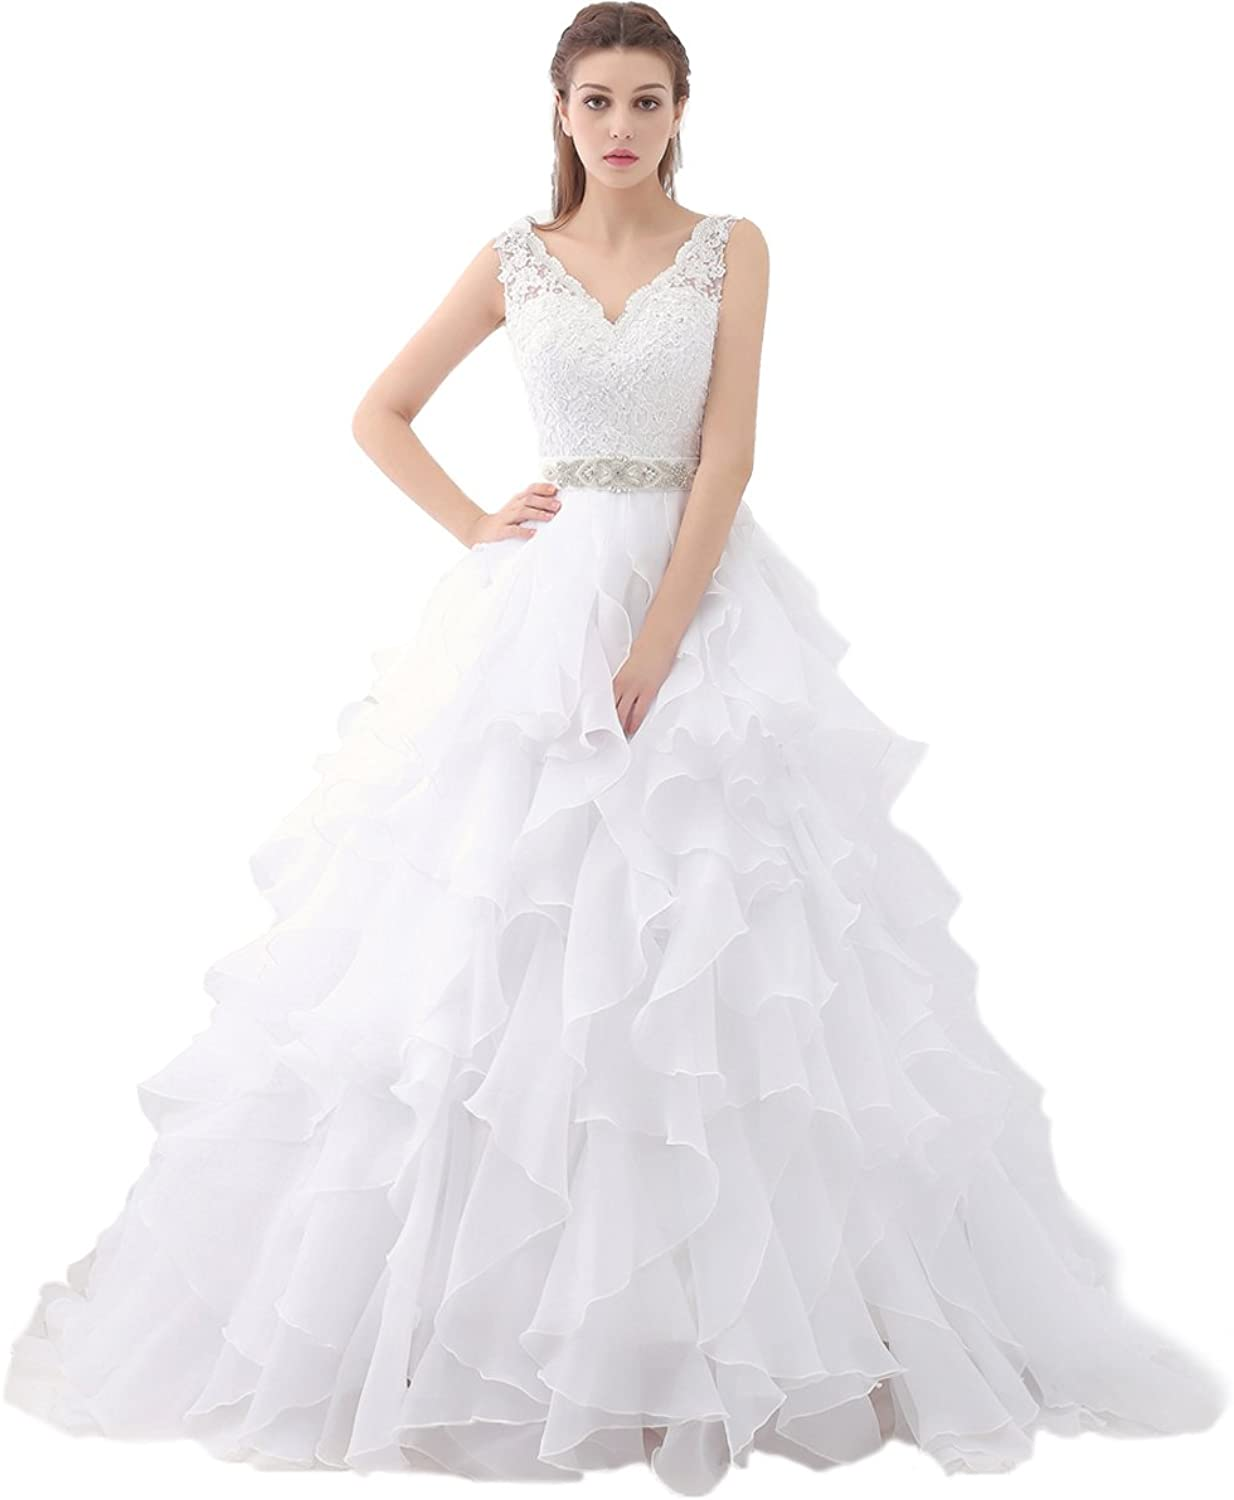 Beauty Bridal Sexy V Neck Ruffles Organza Wedding Dresses for Bride Gown